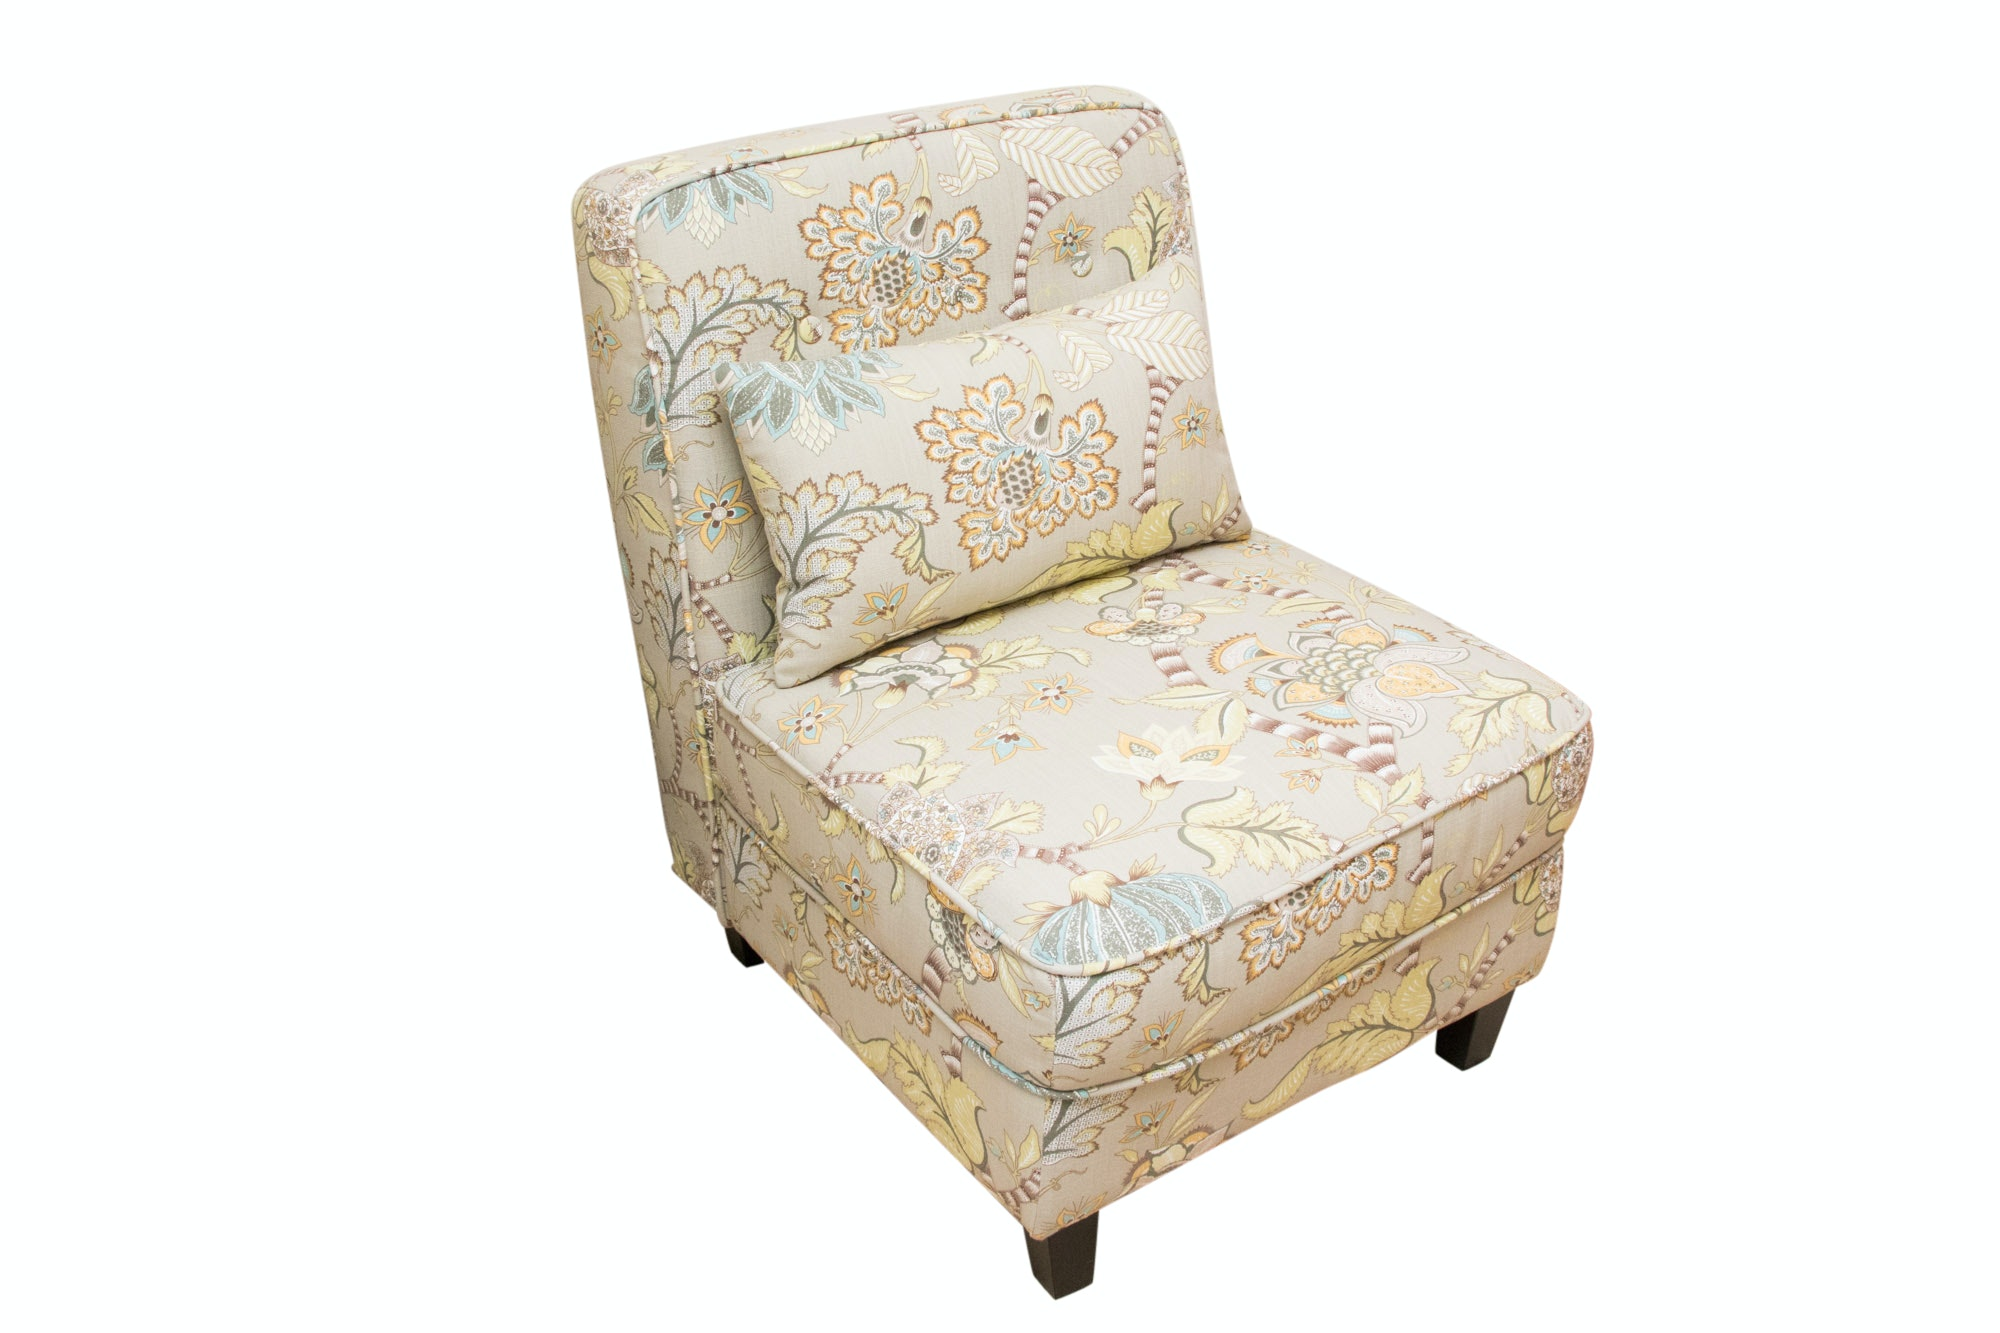 Upholstered Side Chair by Dimensions